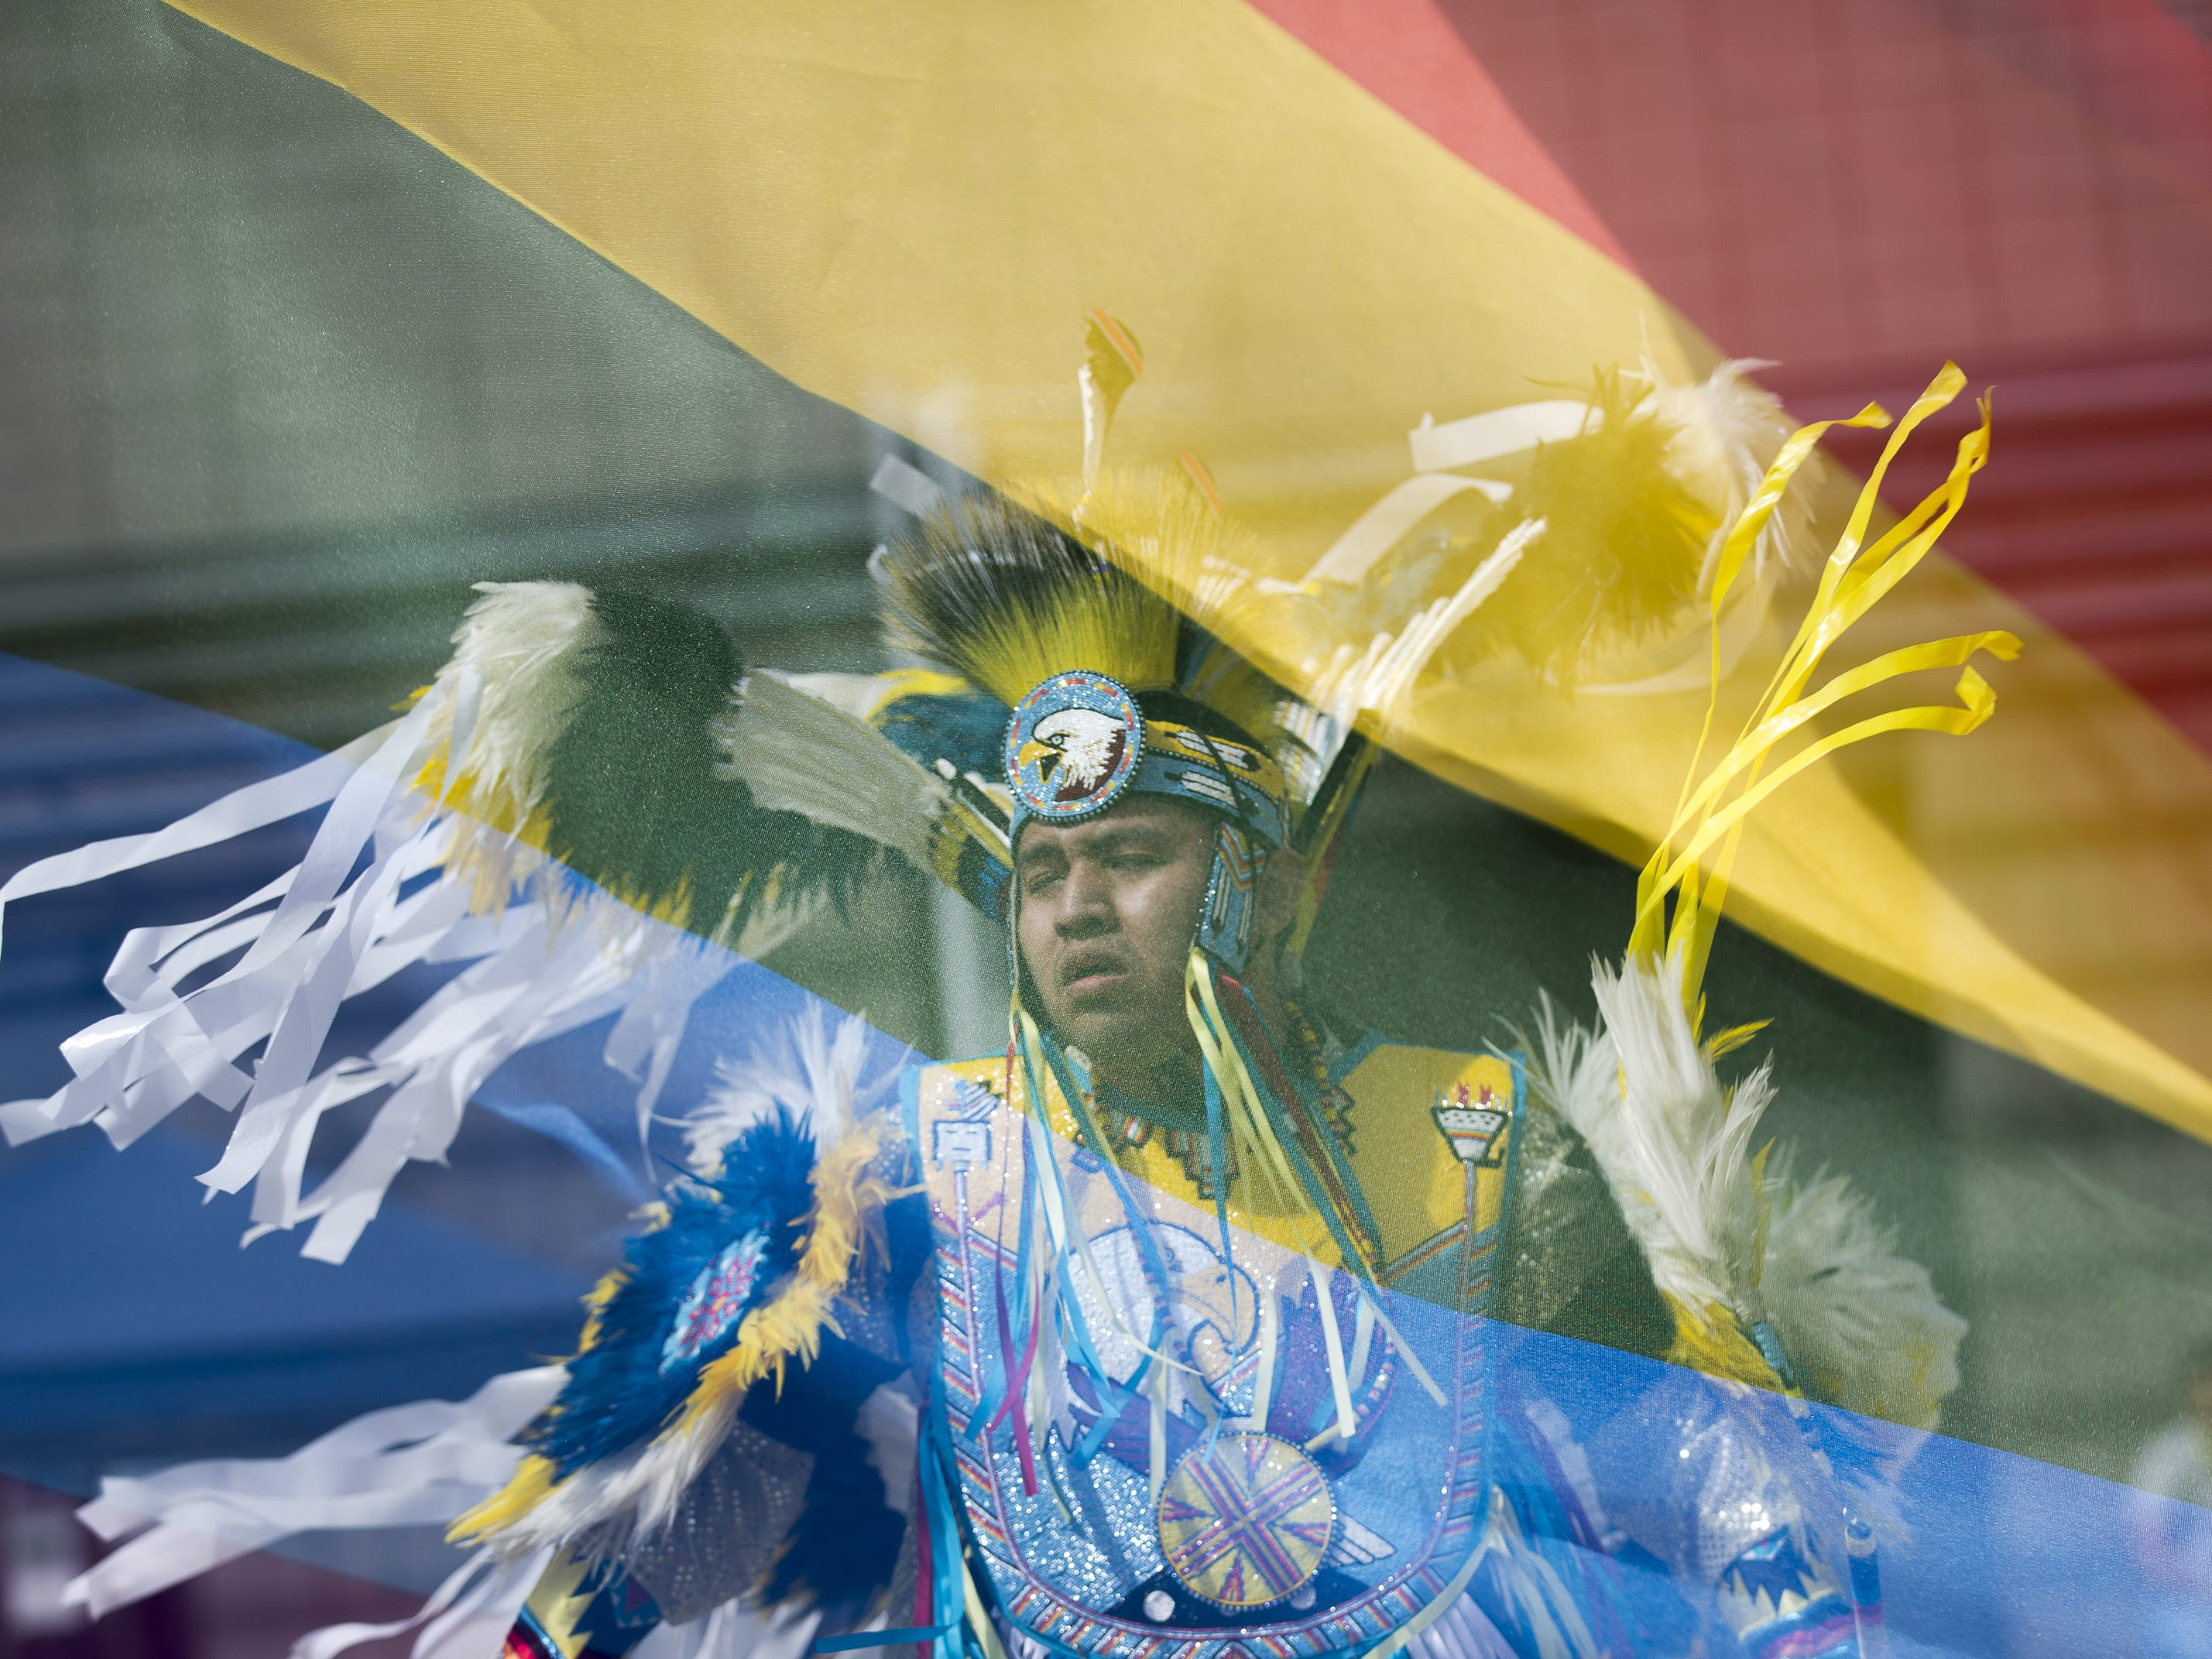 In this double exposure, Cody Thompson performs a feather dance at the Native Two Spirit Powwow and a pride flag blows in the wind at South Mountain Community College in Phoenix, Ariz. on Saturday, March 9, 2019. The powwow was the first of its kind in Arizona, featuring members who identified as two spirit, and members who did not, dancing together.